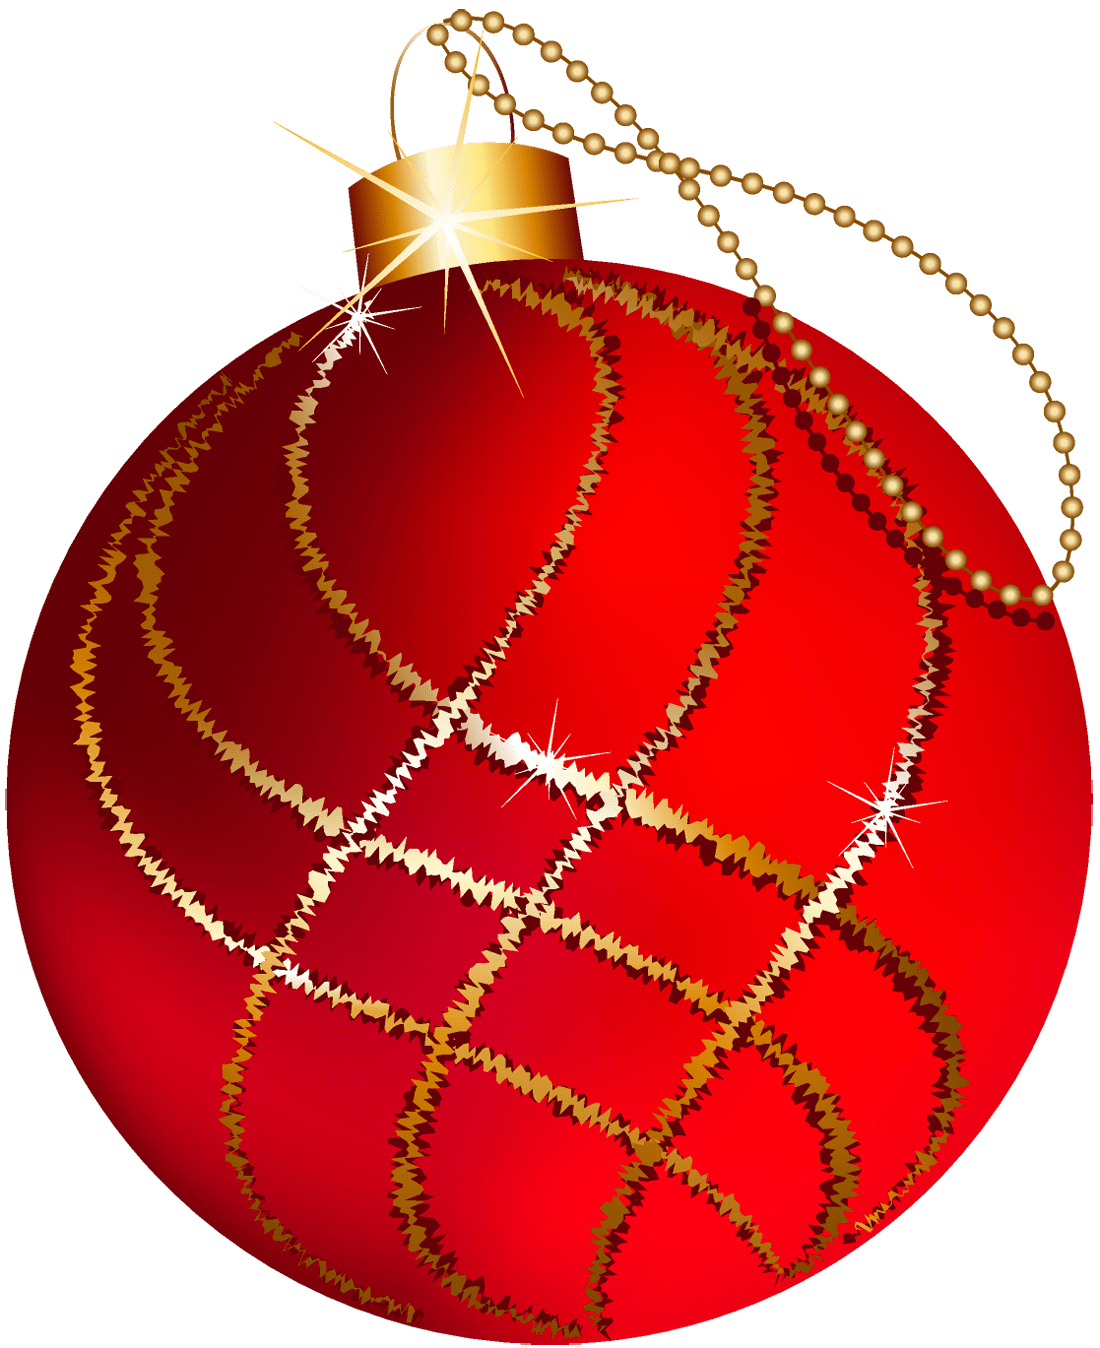 free christmas silver and gold ornament clipart 2x4 ... (1100 x 1348 Pixel)